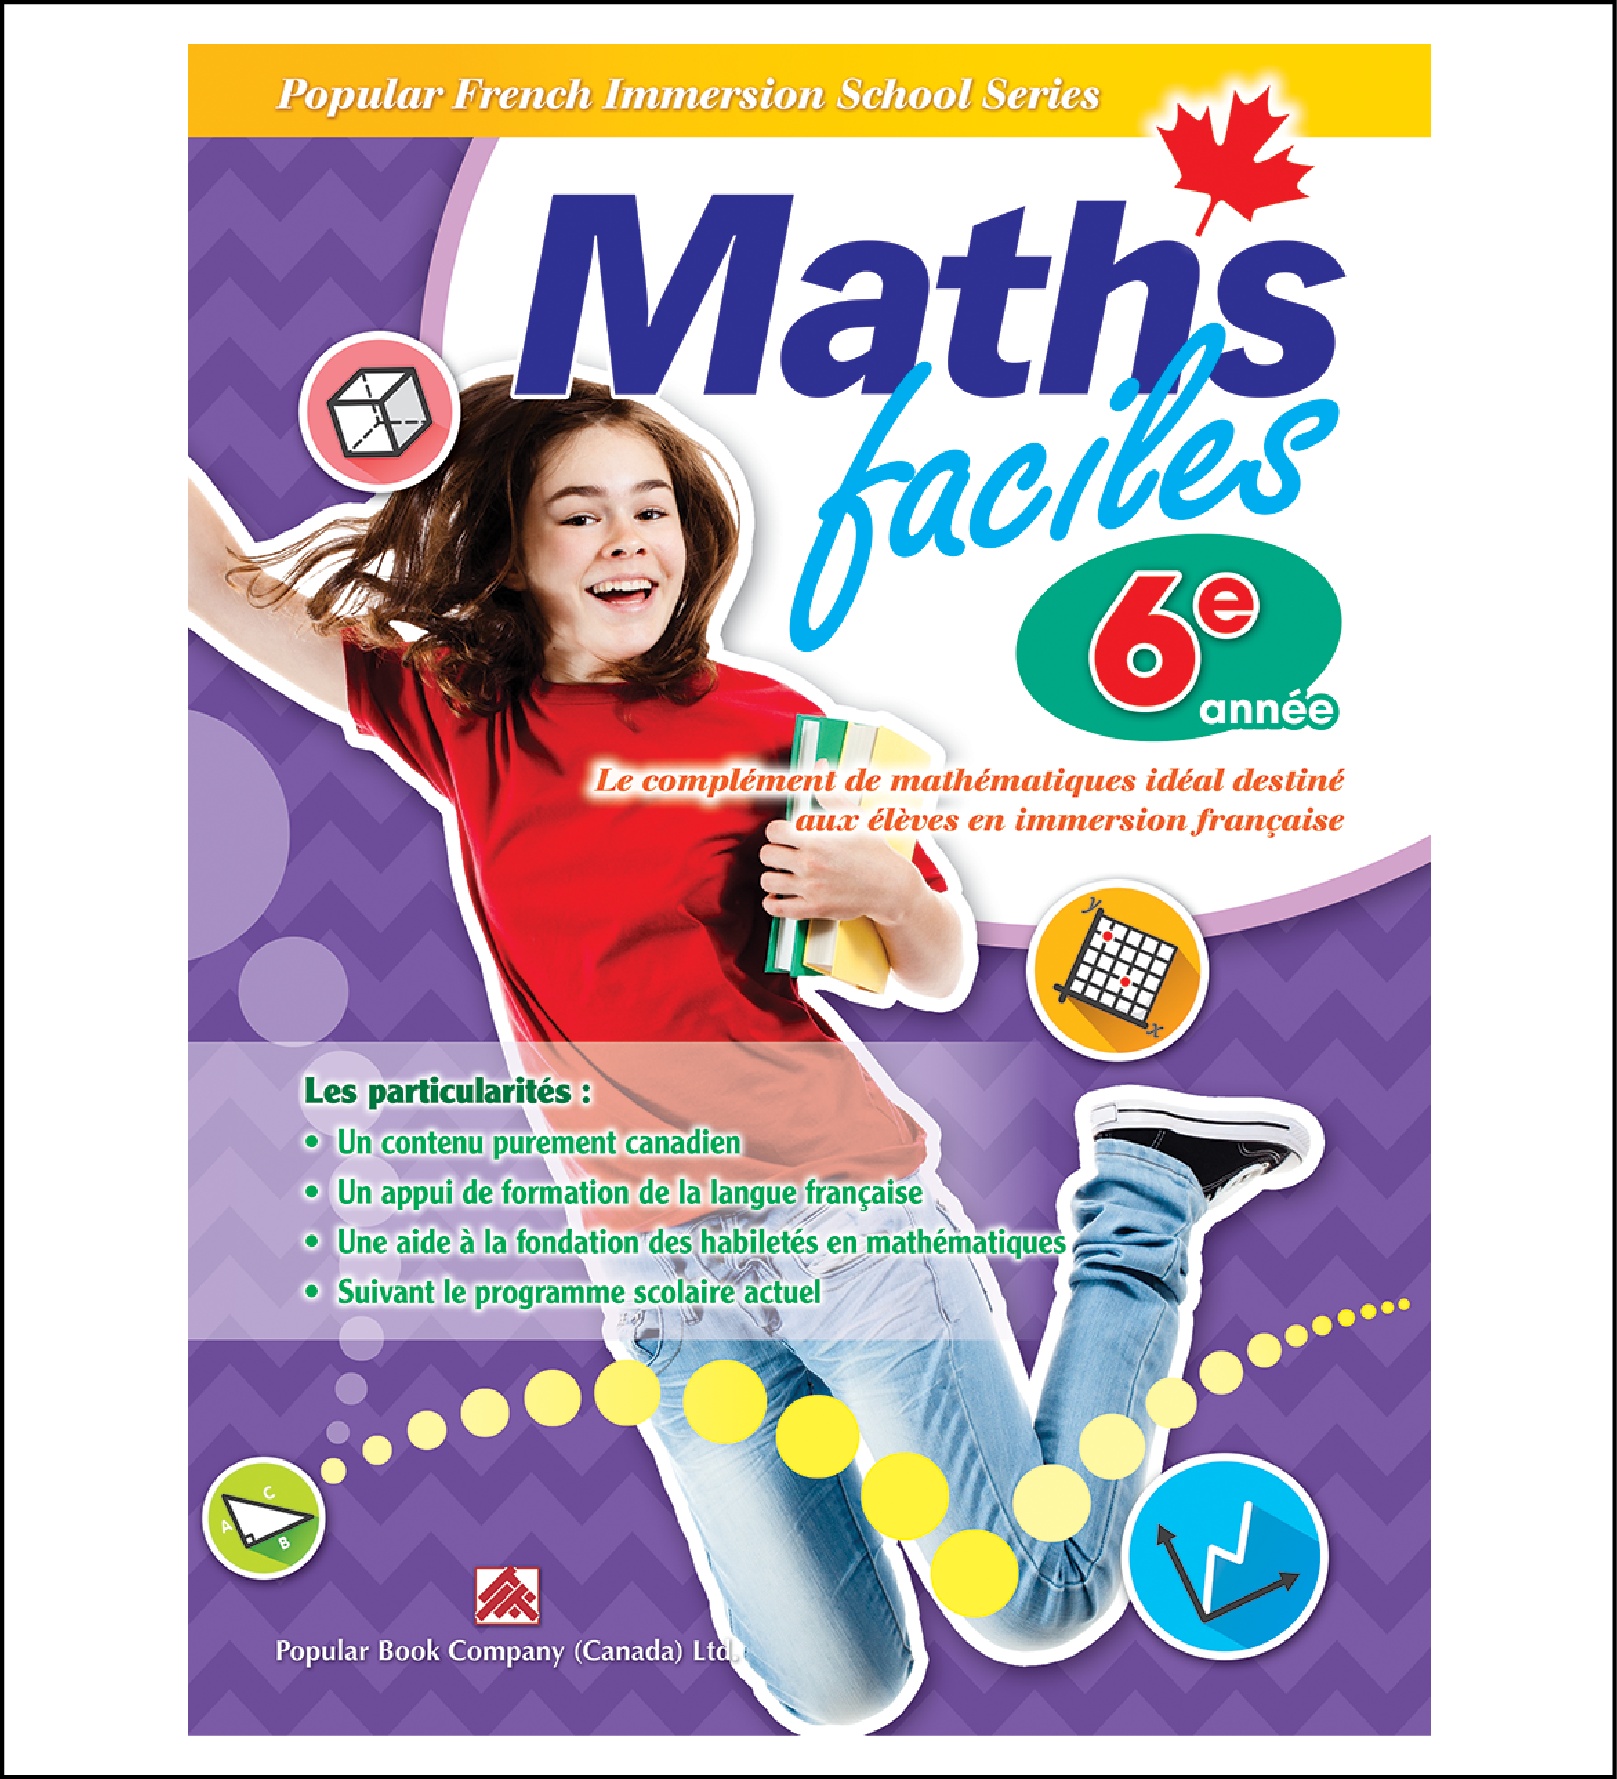 Canadian Curriculum Workbook for French Immersion School Maths faciles grade 6